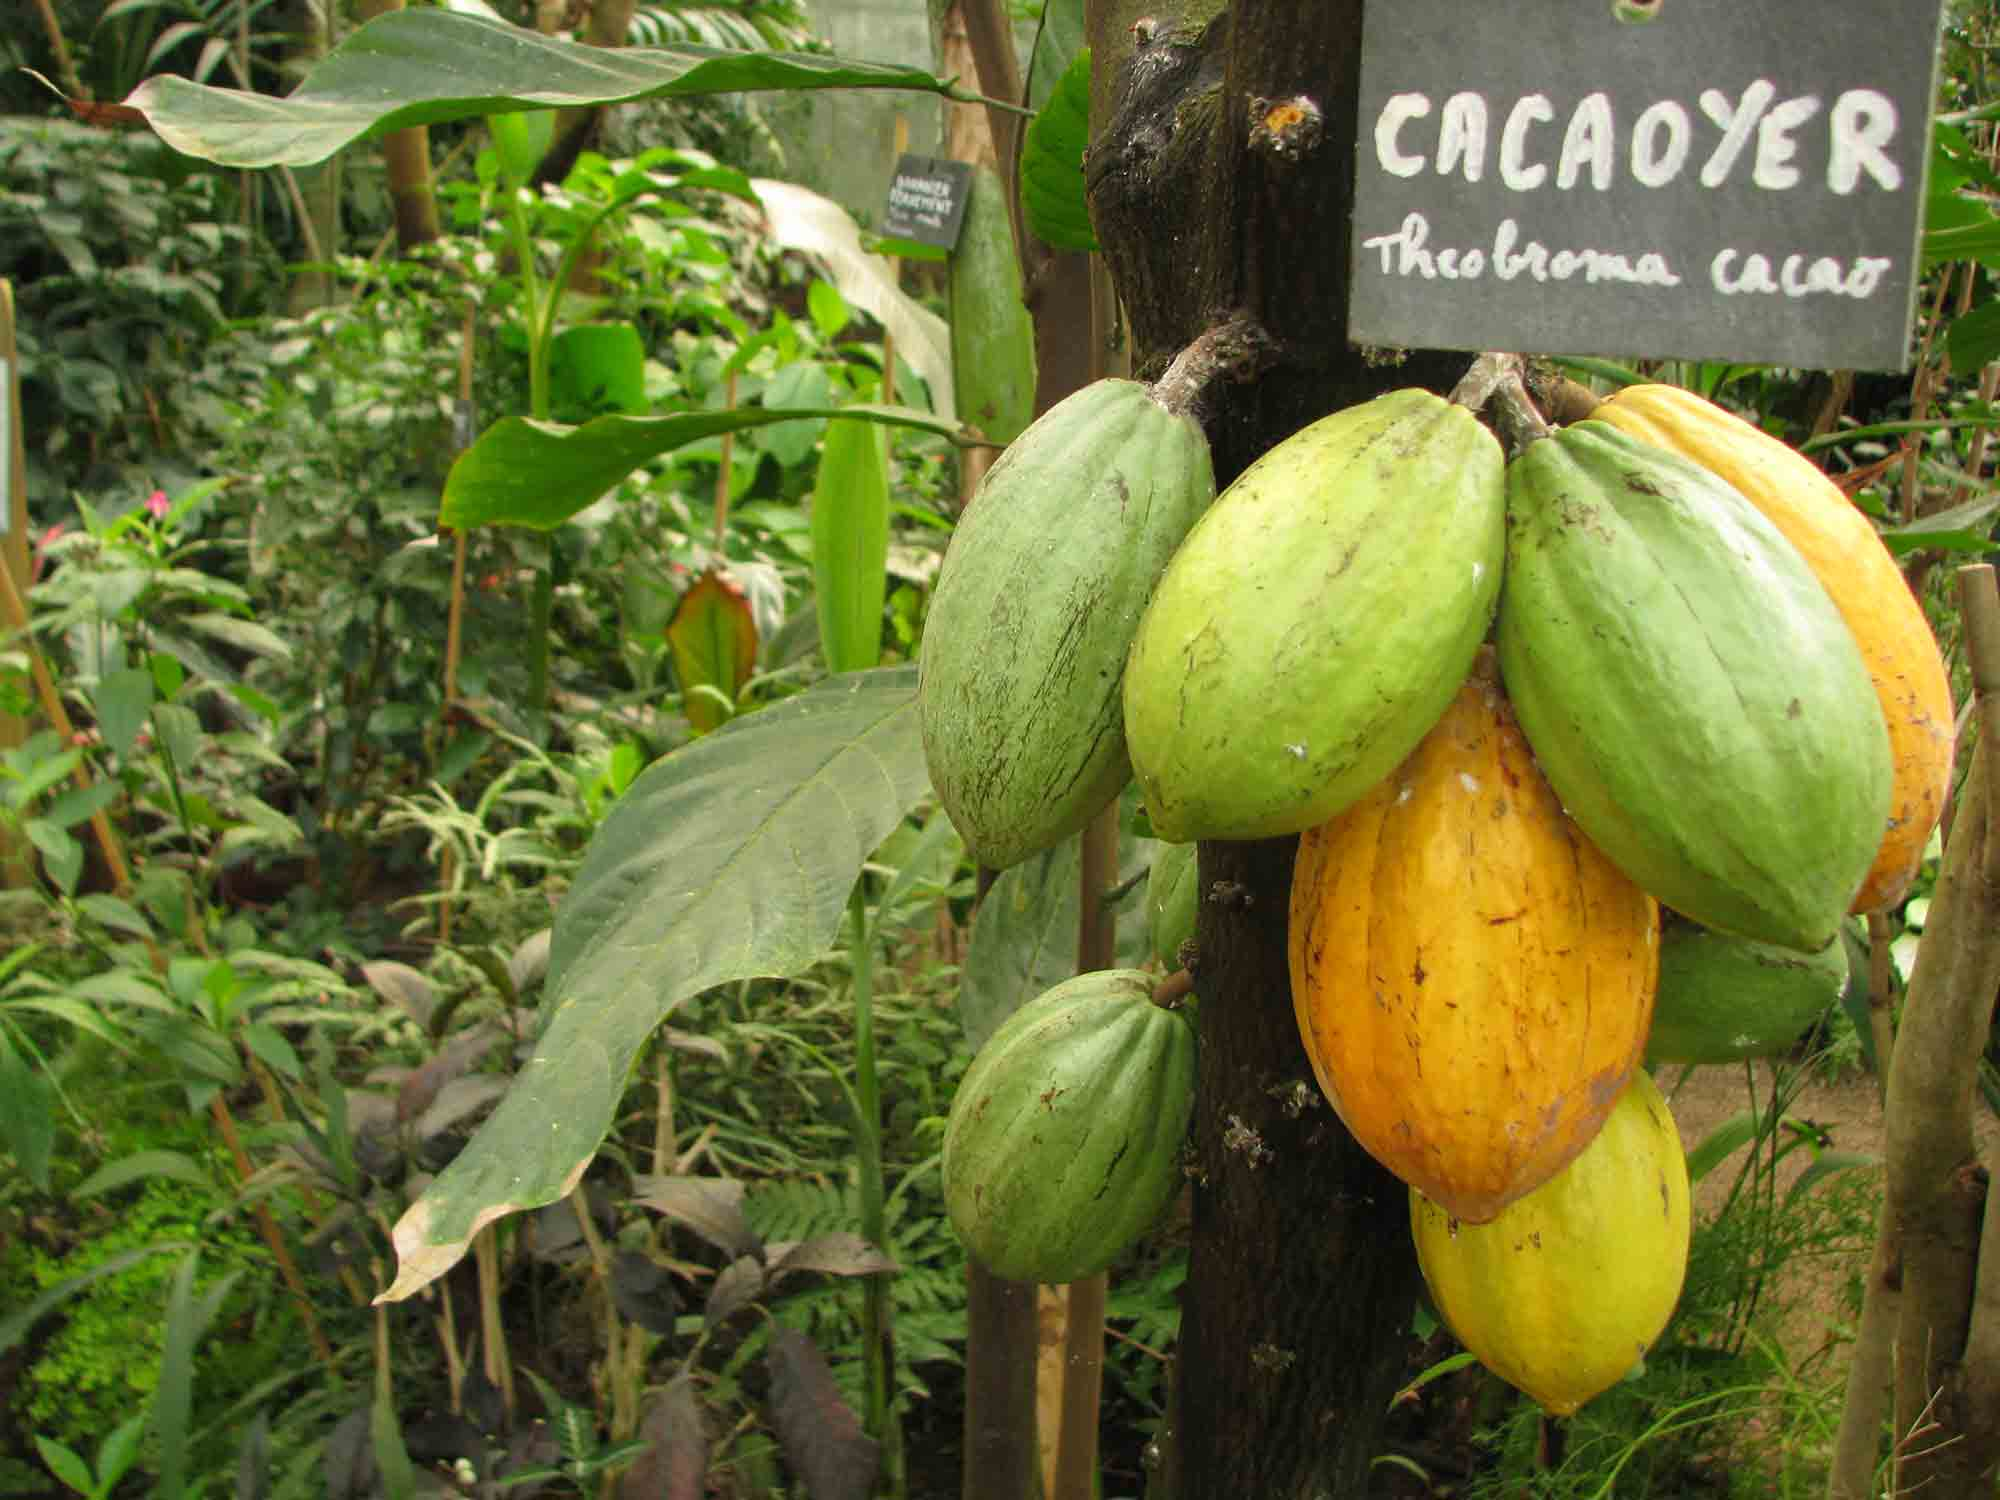 theobroma-cacao-cacaoyer-naturospace-honfleur